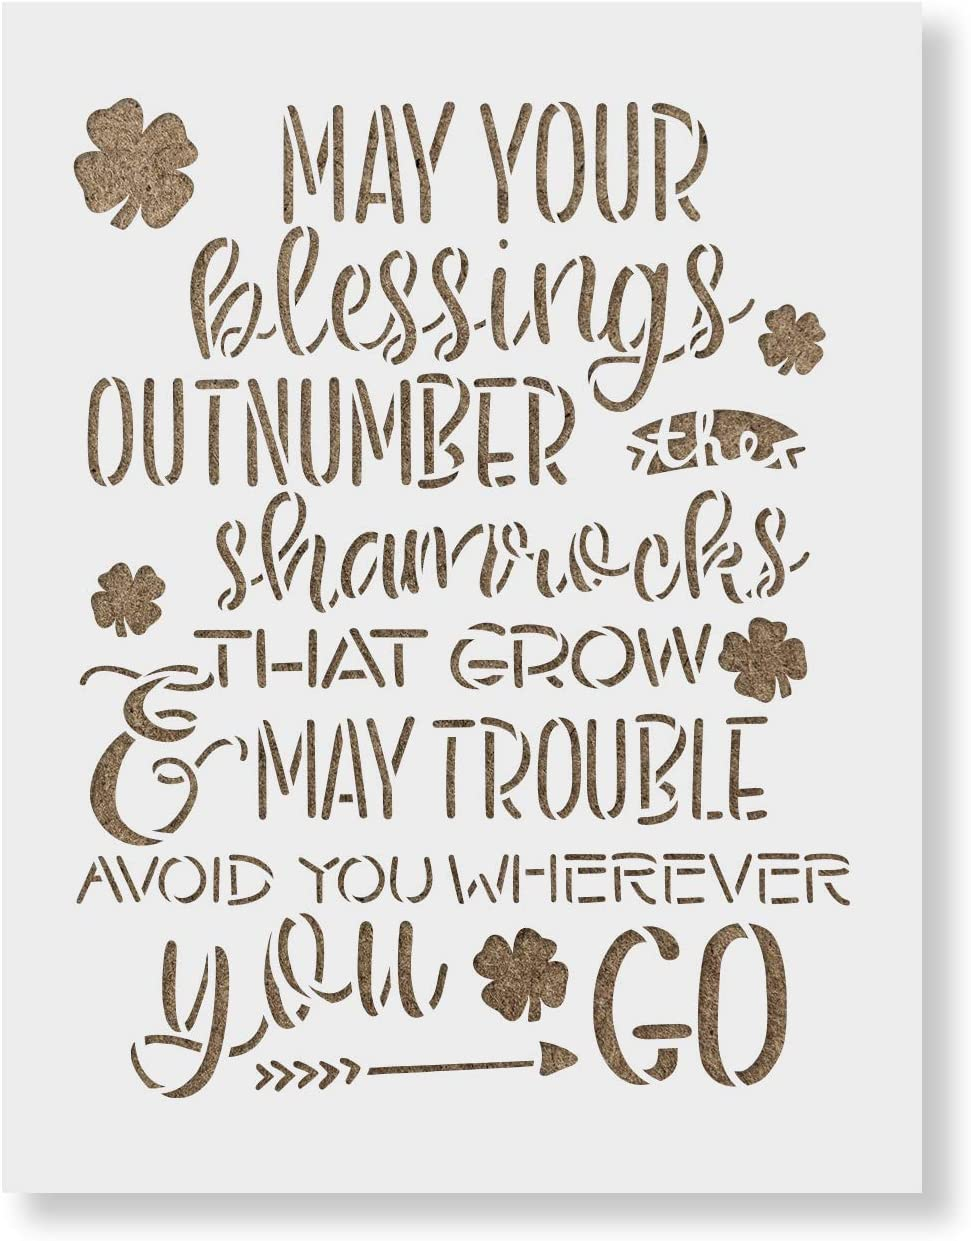 May Your Blessings Shamrock St - Patricks Stencil Stenc Reusable High quality Surprise price